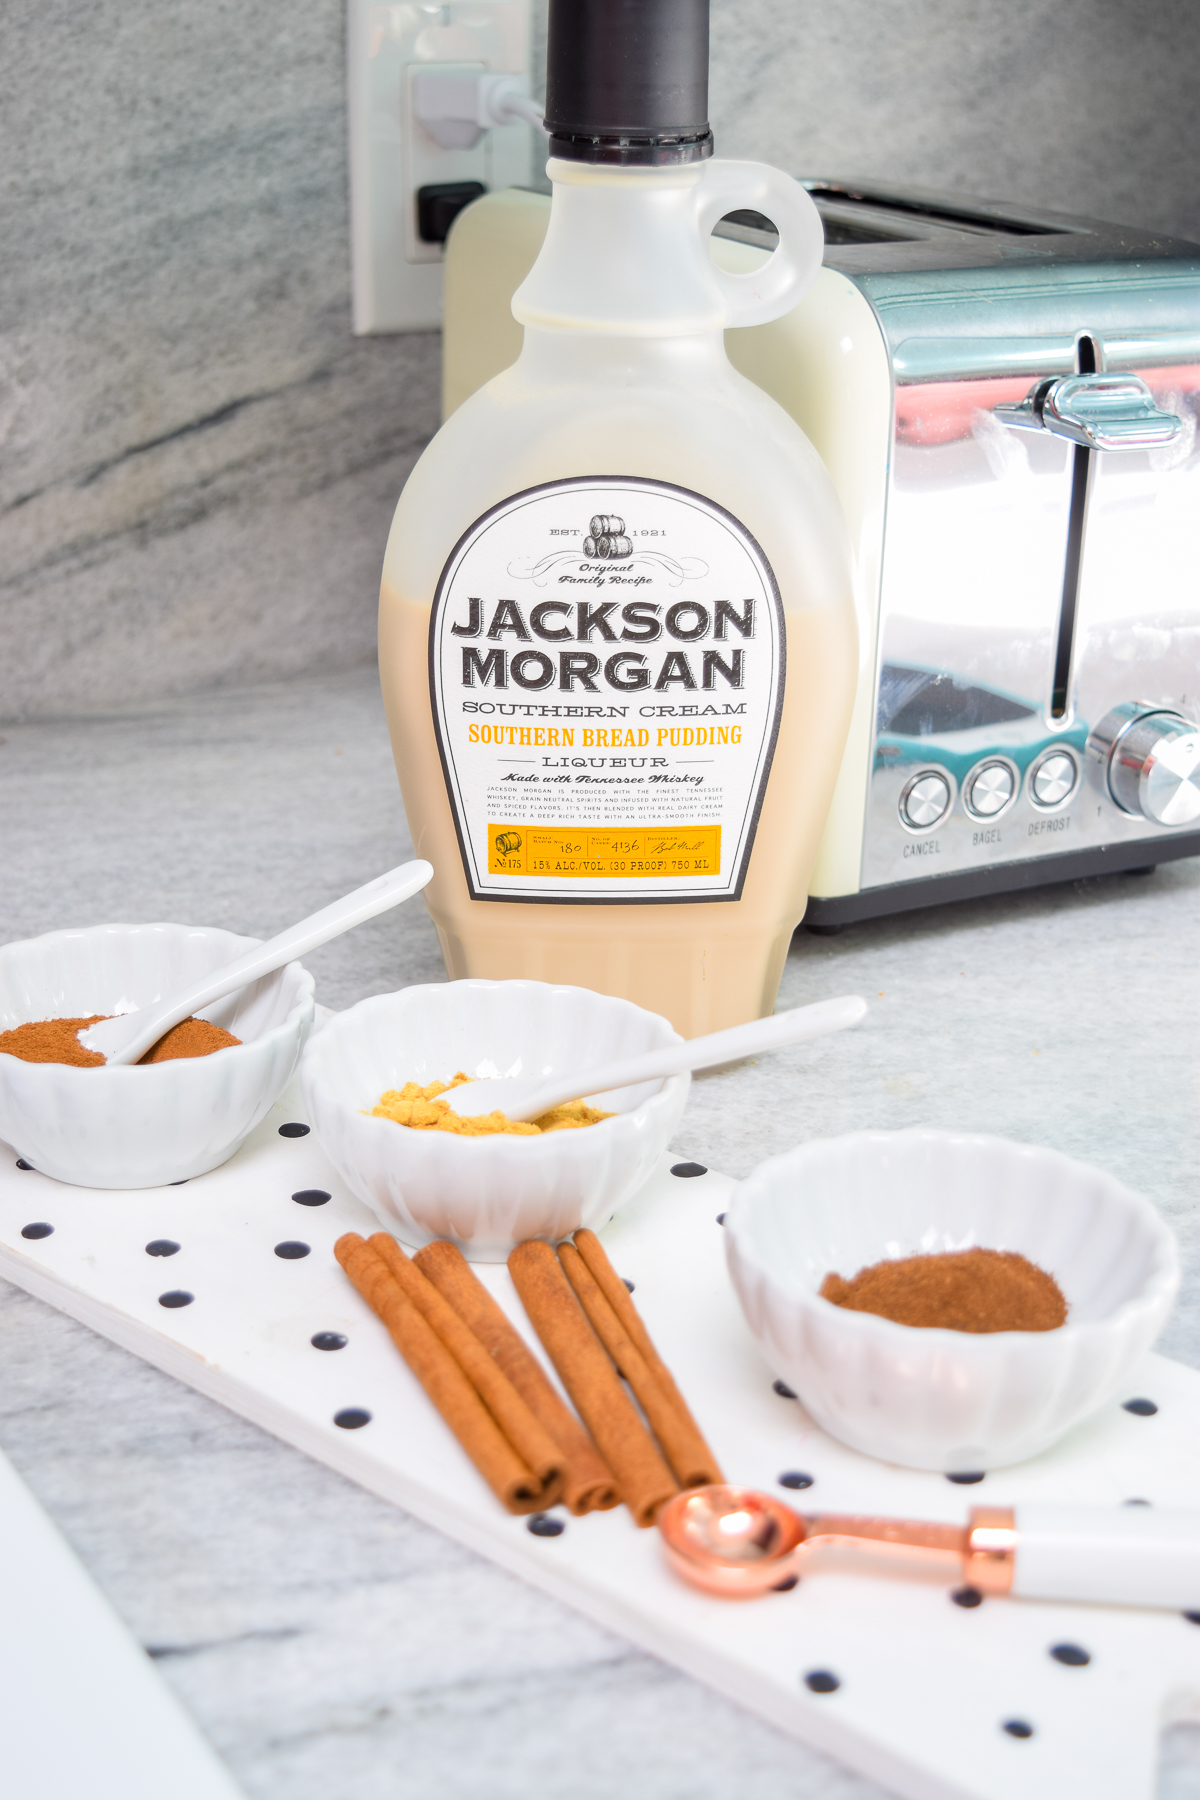 Pumpkin Spice Pudding Shots for desert, with a toasted marshmallow topping are super easy to make! Come grab the recipe & my secret ingredient. Psssst! It's Jackson Morgan's Southern Bread Pudding Whiskey Cream